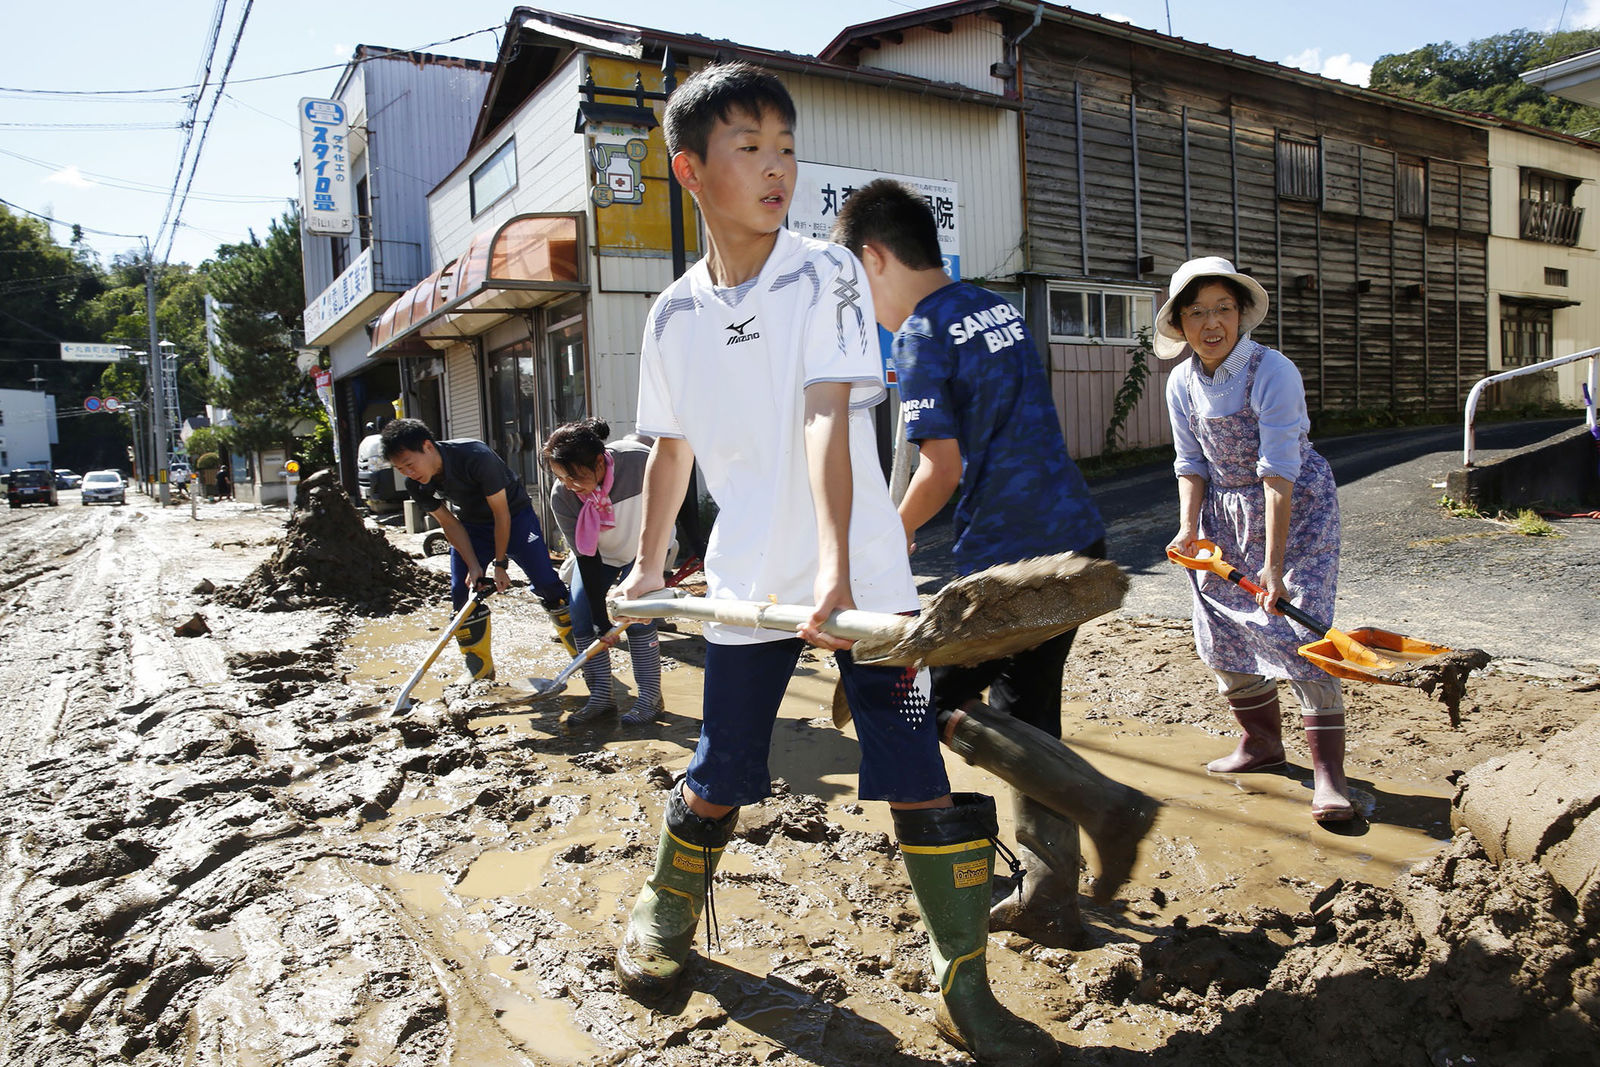 Students and residents scoop dirt as the town is flooded Typhoon Hagibis, in Marumori, Miyagi prefecture, northern Japan, Sunday, Oct. 13, 2019. (Kyodo News via AP)